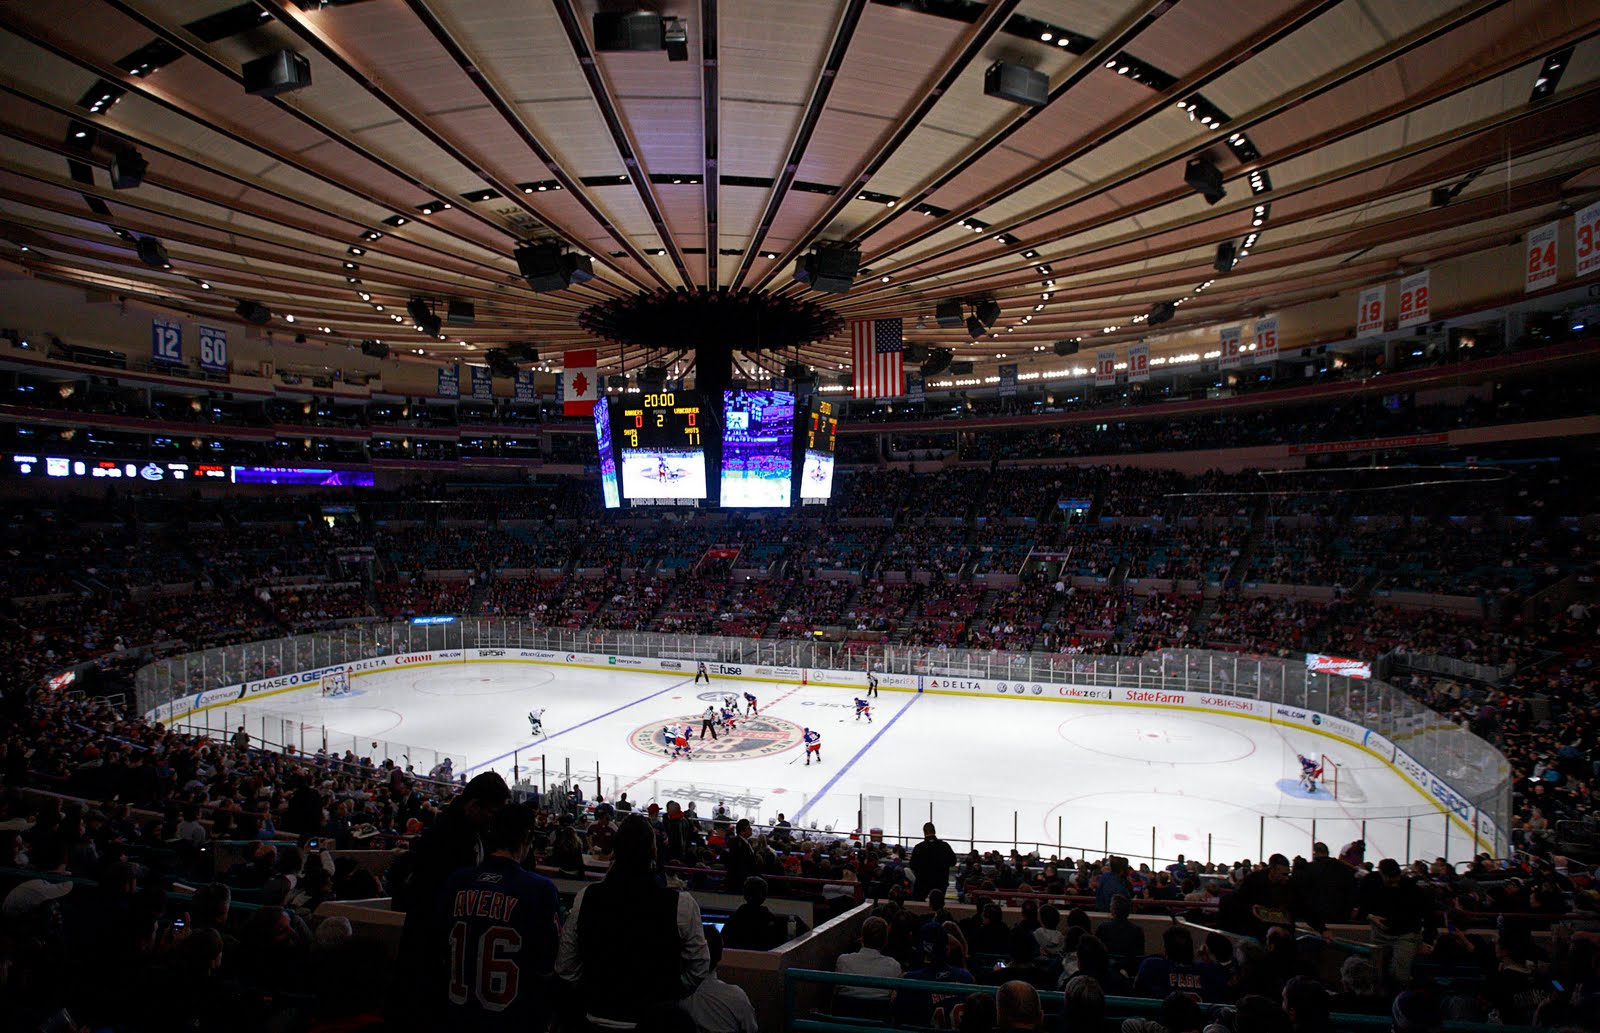 Gdt Game 5 Leafs Vs Rangers 7 00 Pm Est Cbc Nhln Us Msg Hfboards